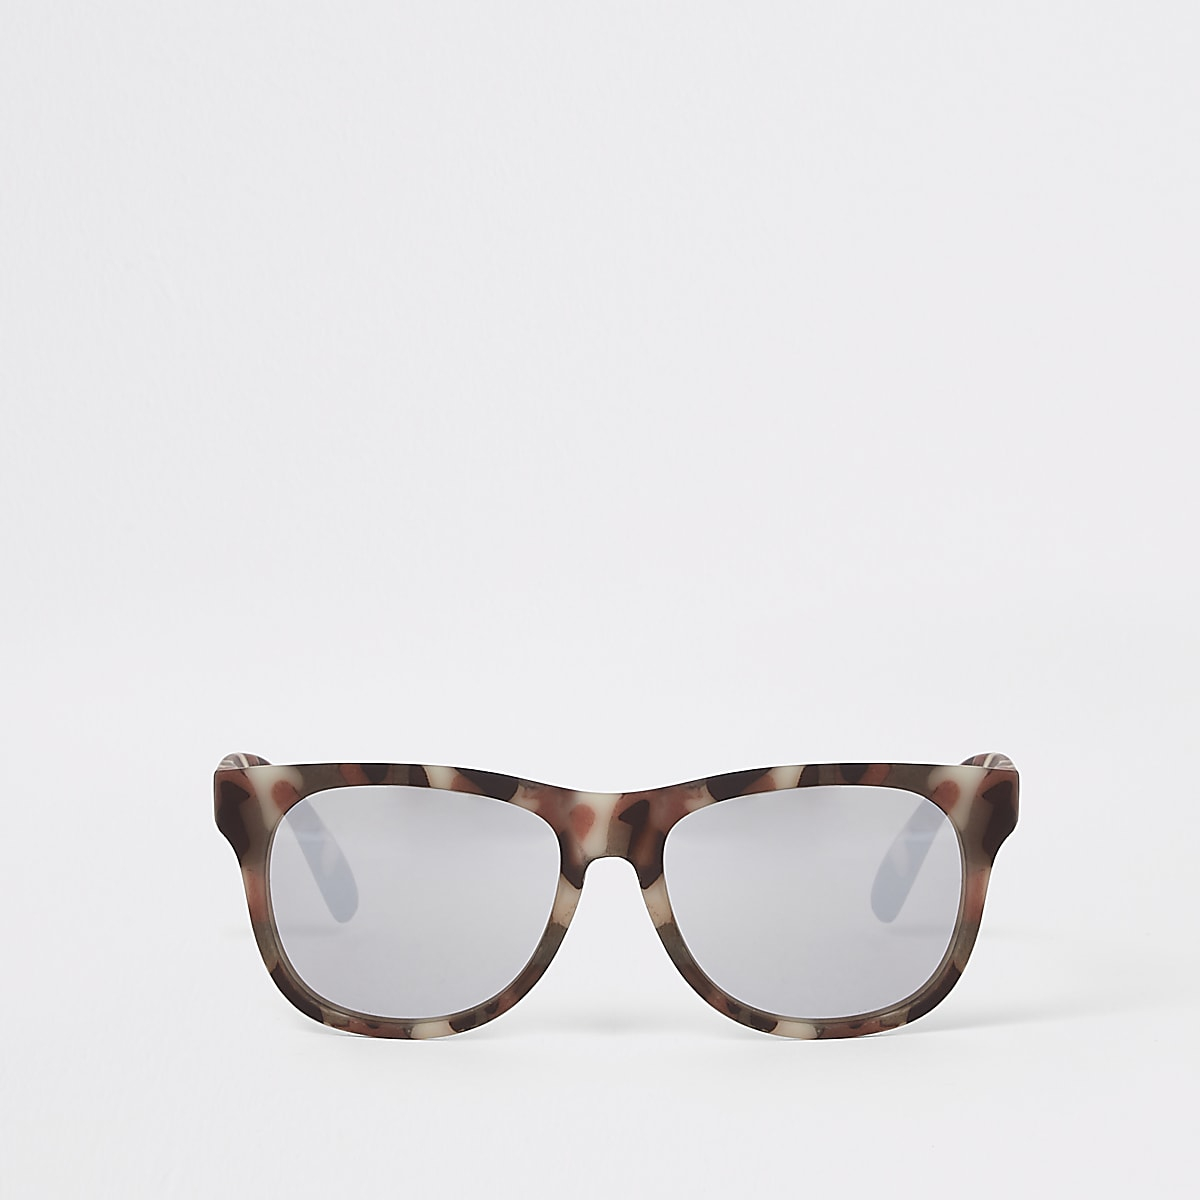 Boys khaki camo retro sunglasses